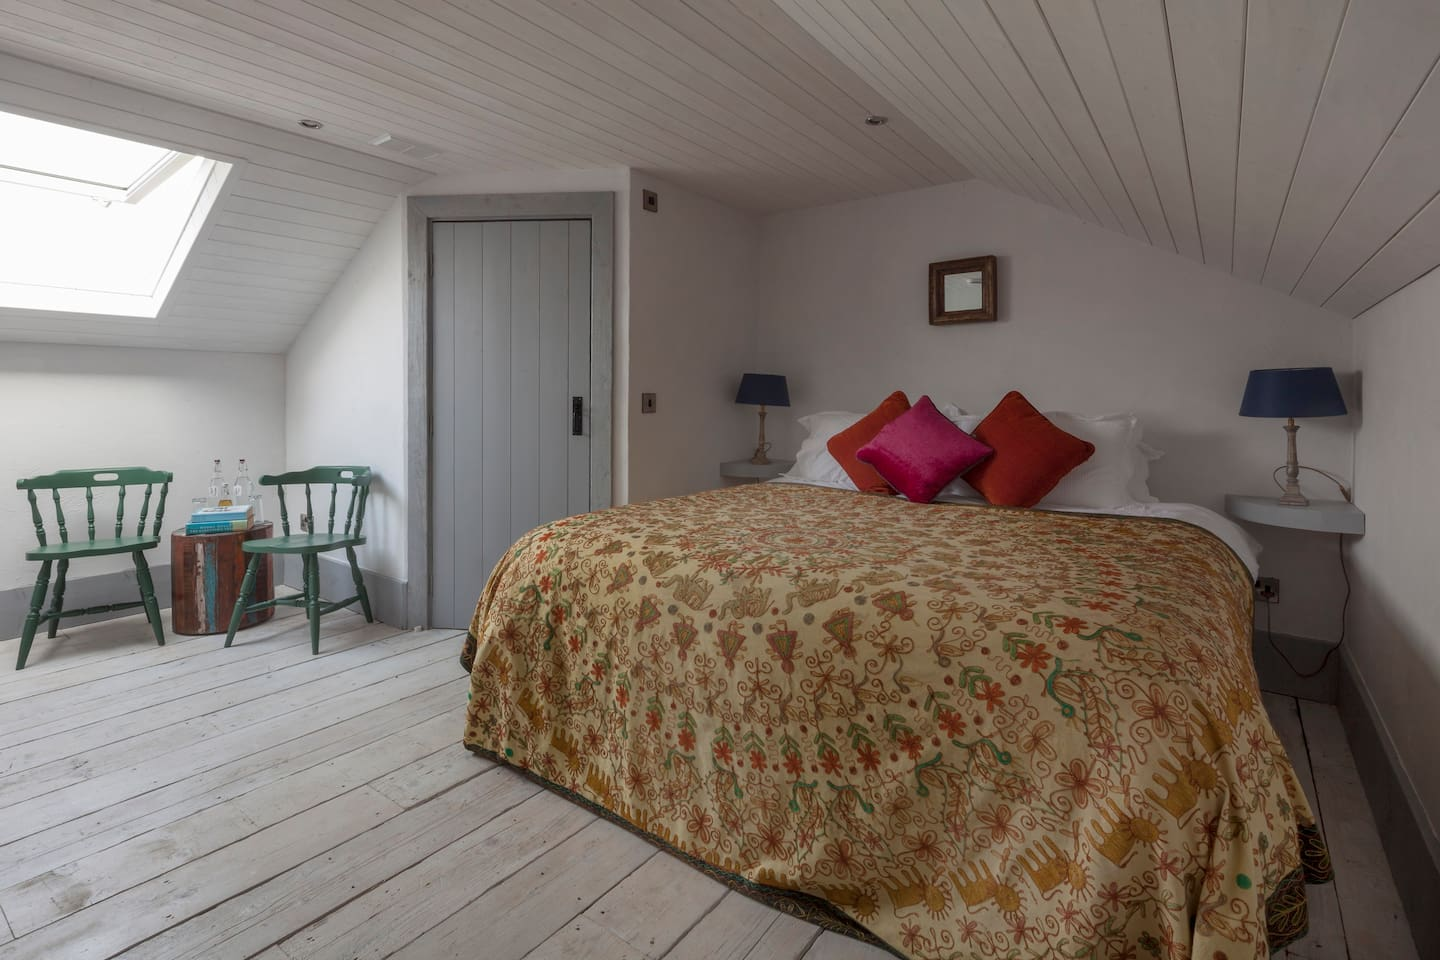 Each of the four bedrooms in the coachhouse room has a super-king sized bed with crisp white lined, quirky rustic interior and ensuite bathroom. This listing is for the Grainstore Room (pictured above) which has one huge, superking size bed and one proper single bed in the room, so perfect for a family travelling with a child or for two or even three singles.